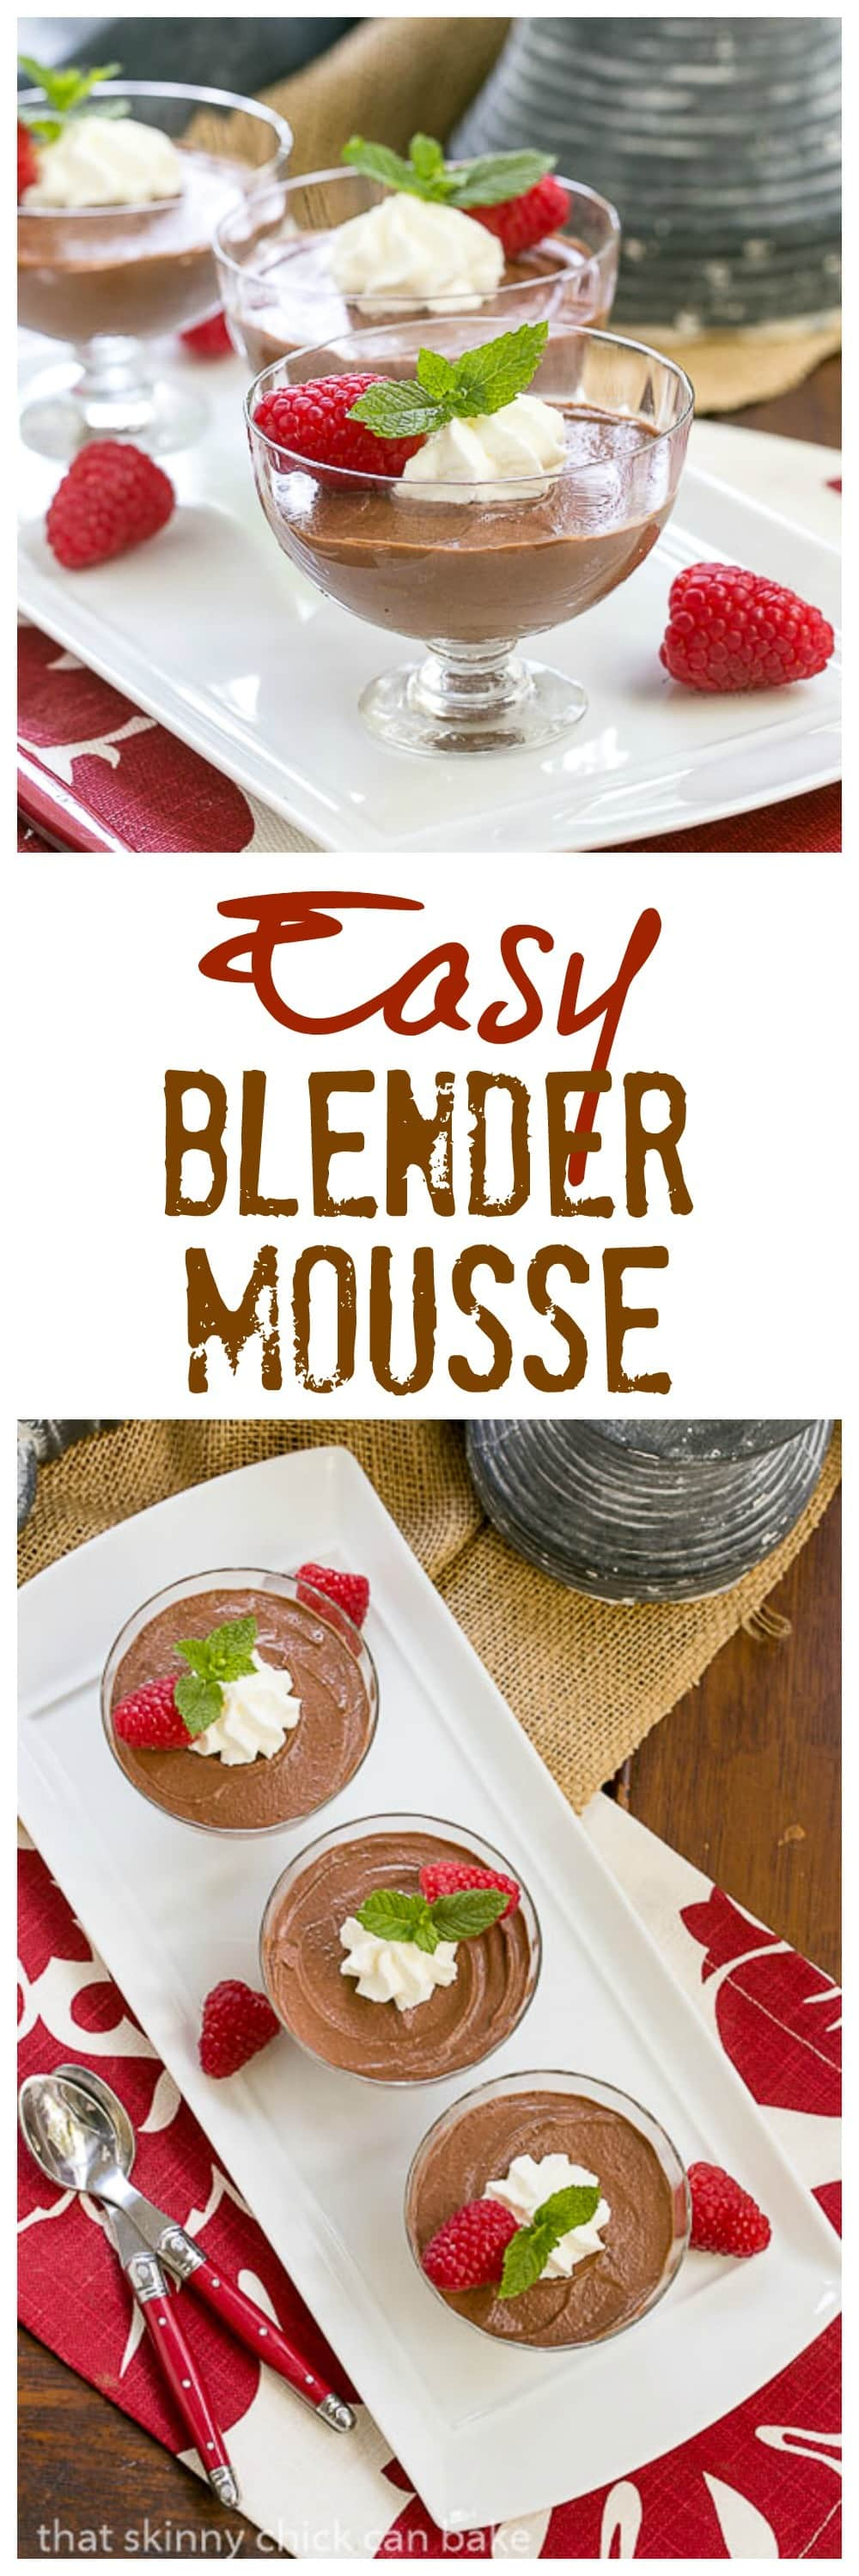 Blender Chocolate Mousse| The easiest chocolate mousse ever!!!